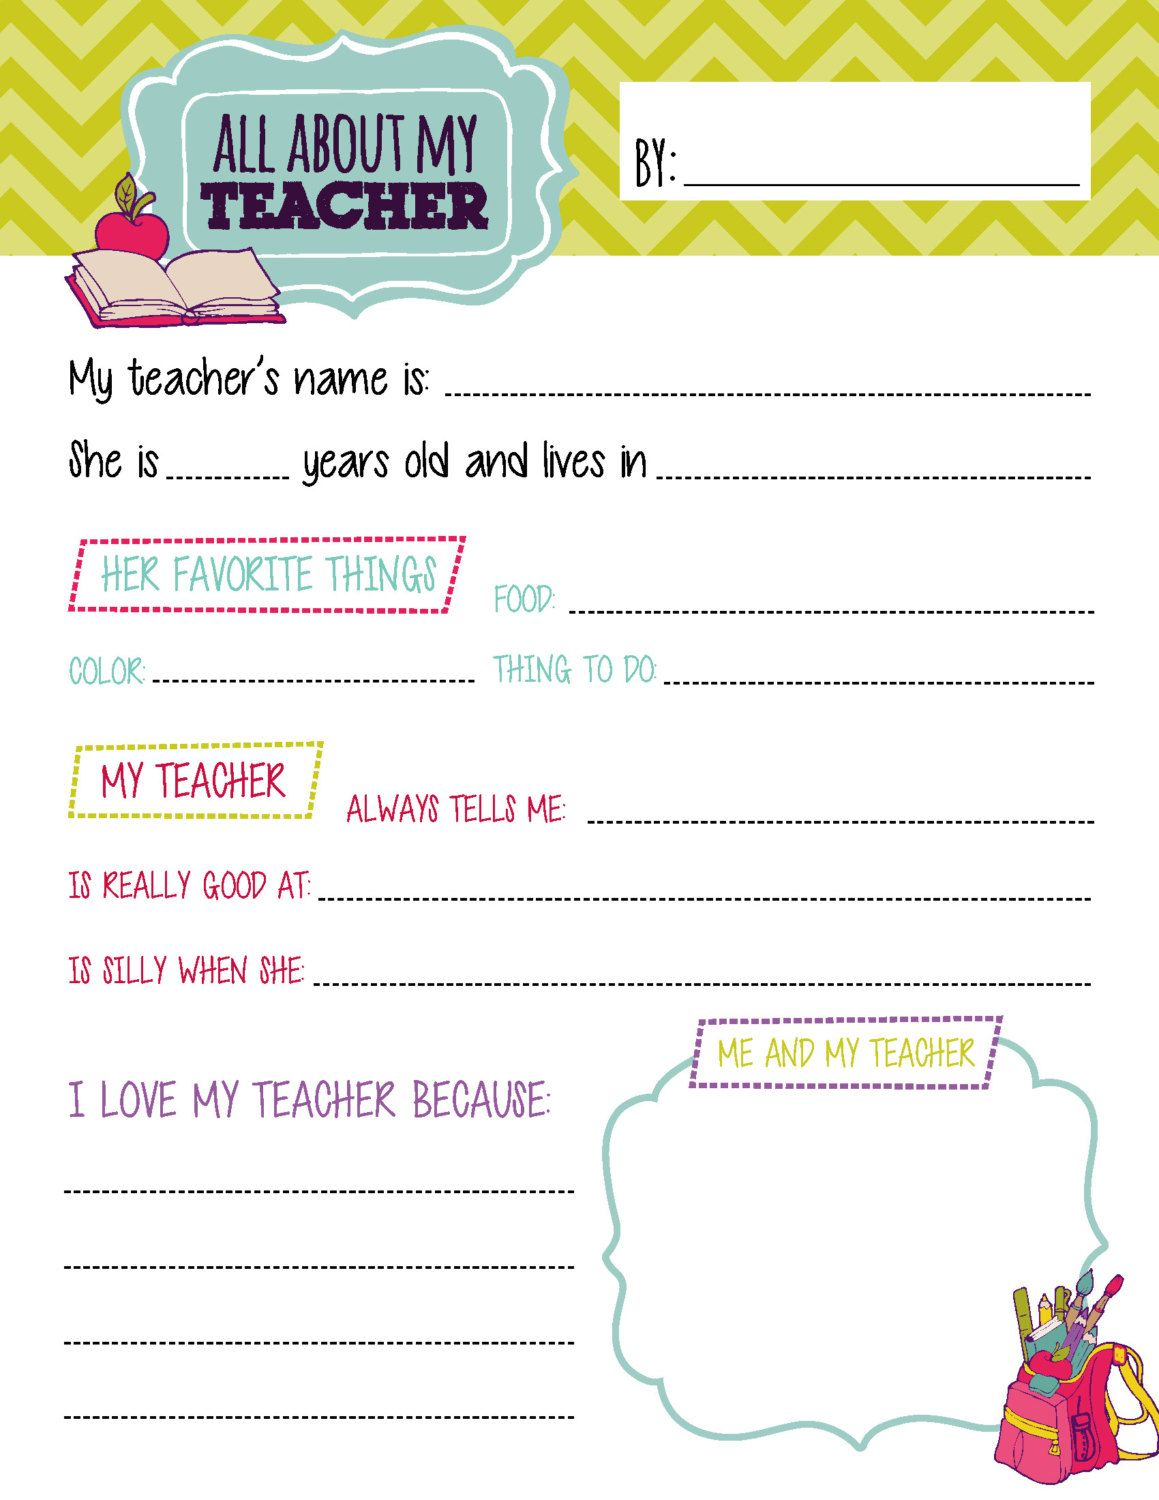 All About My Teacher Questionnaire Printables | Teacher Appreciation ...